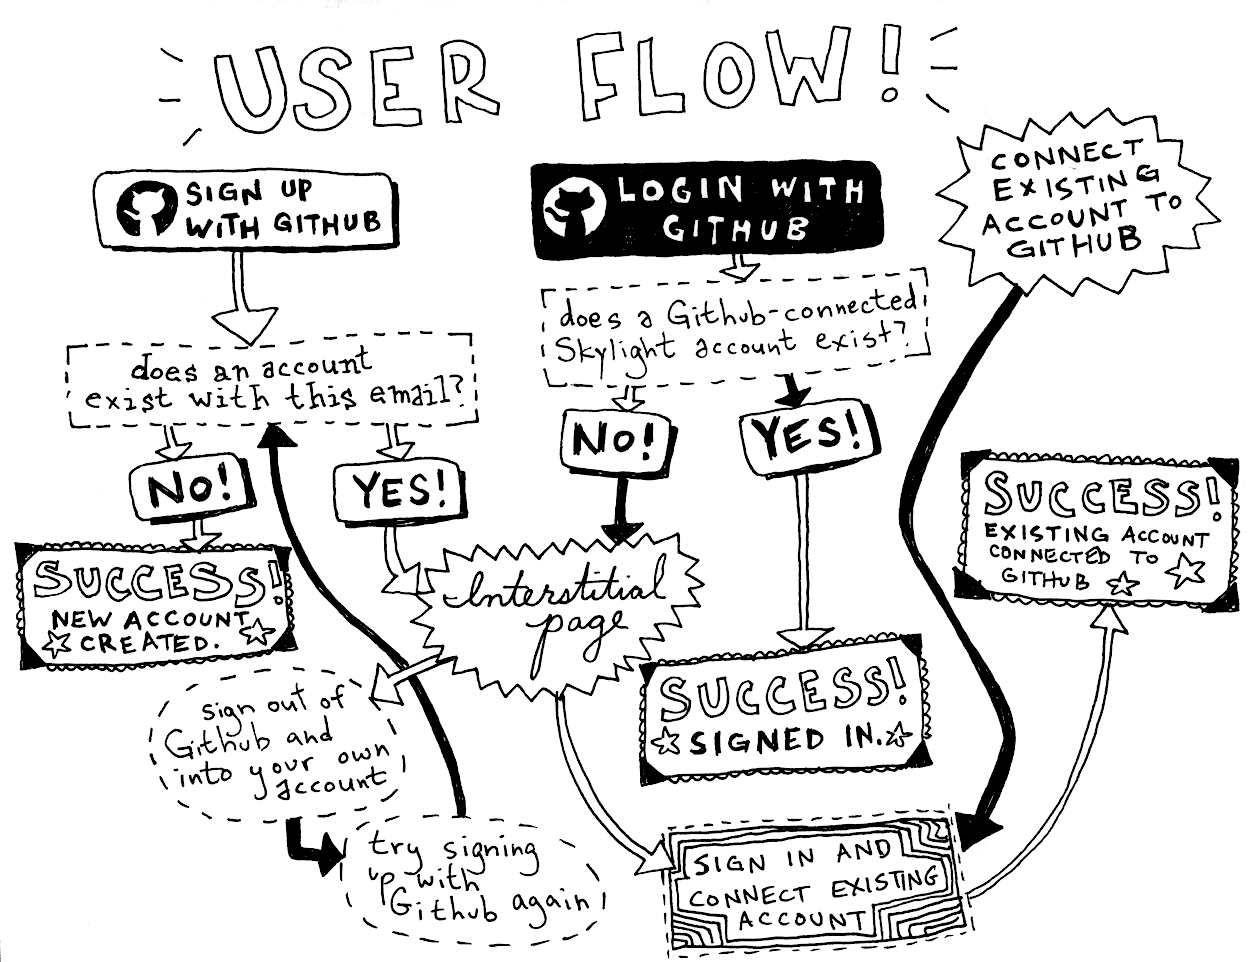 An illustrated sign-in flow